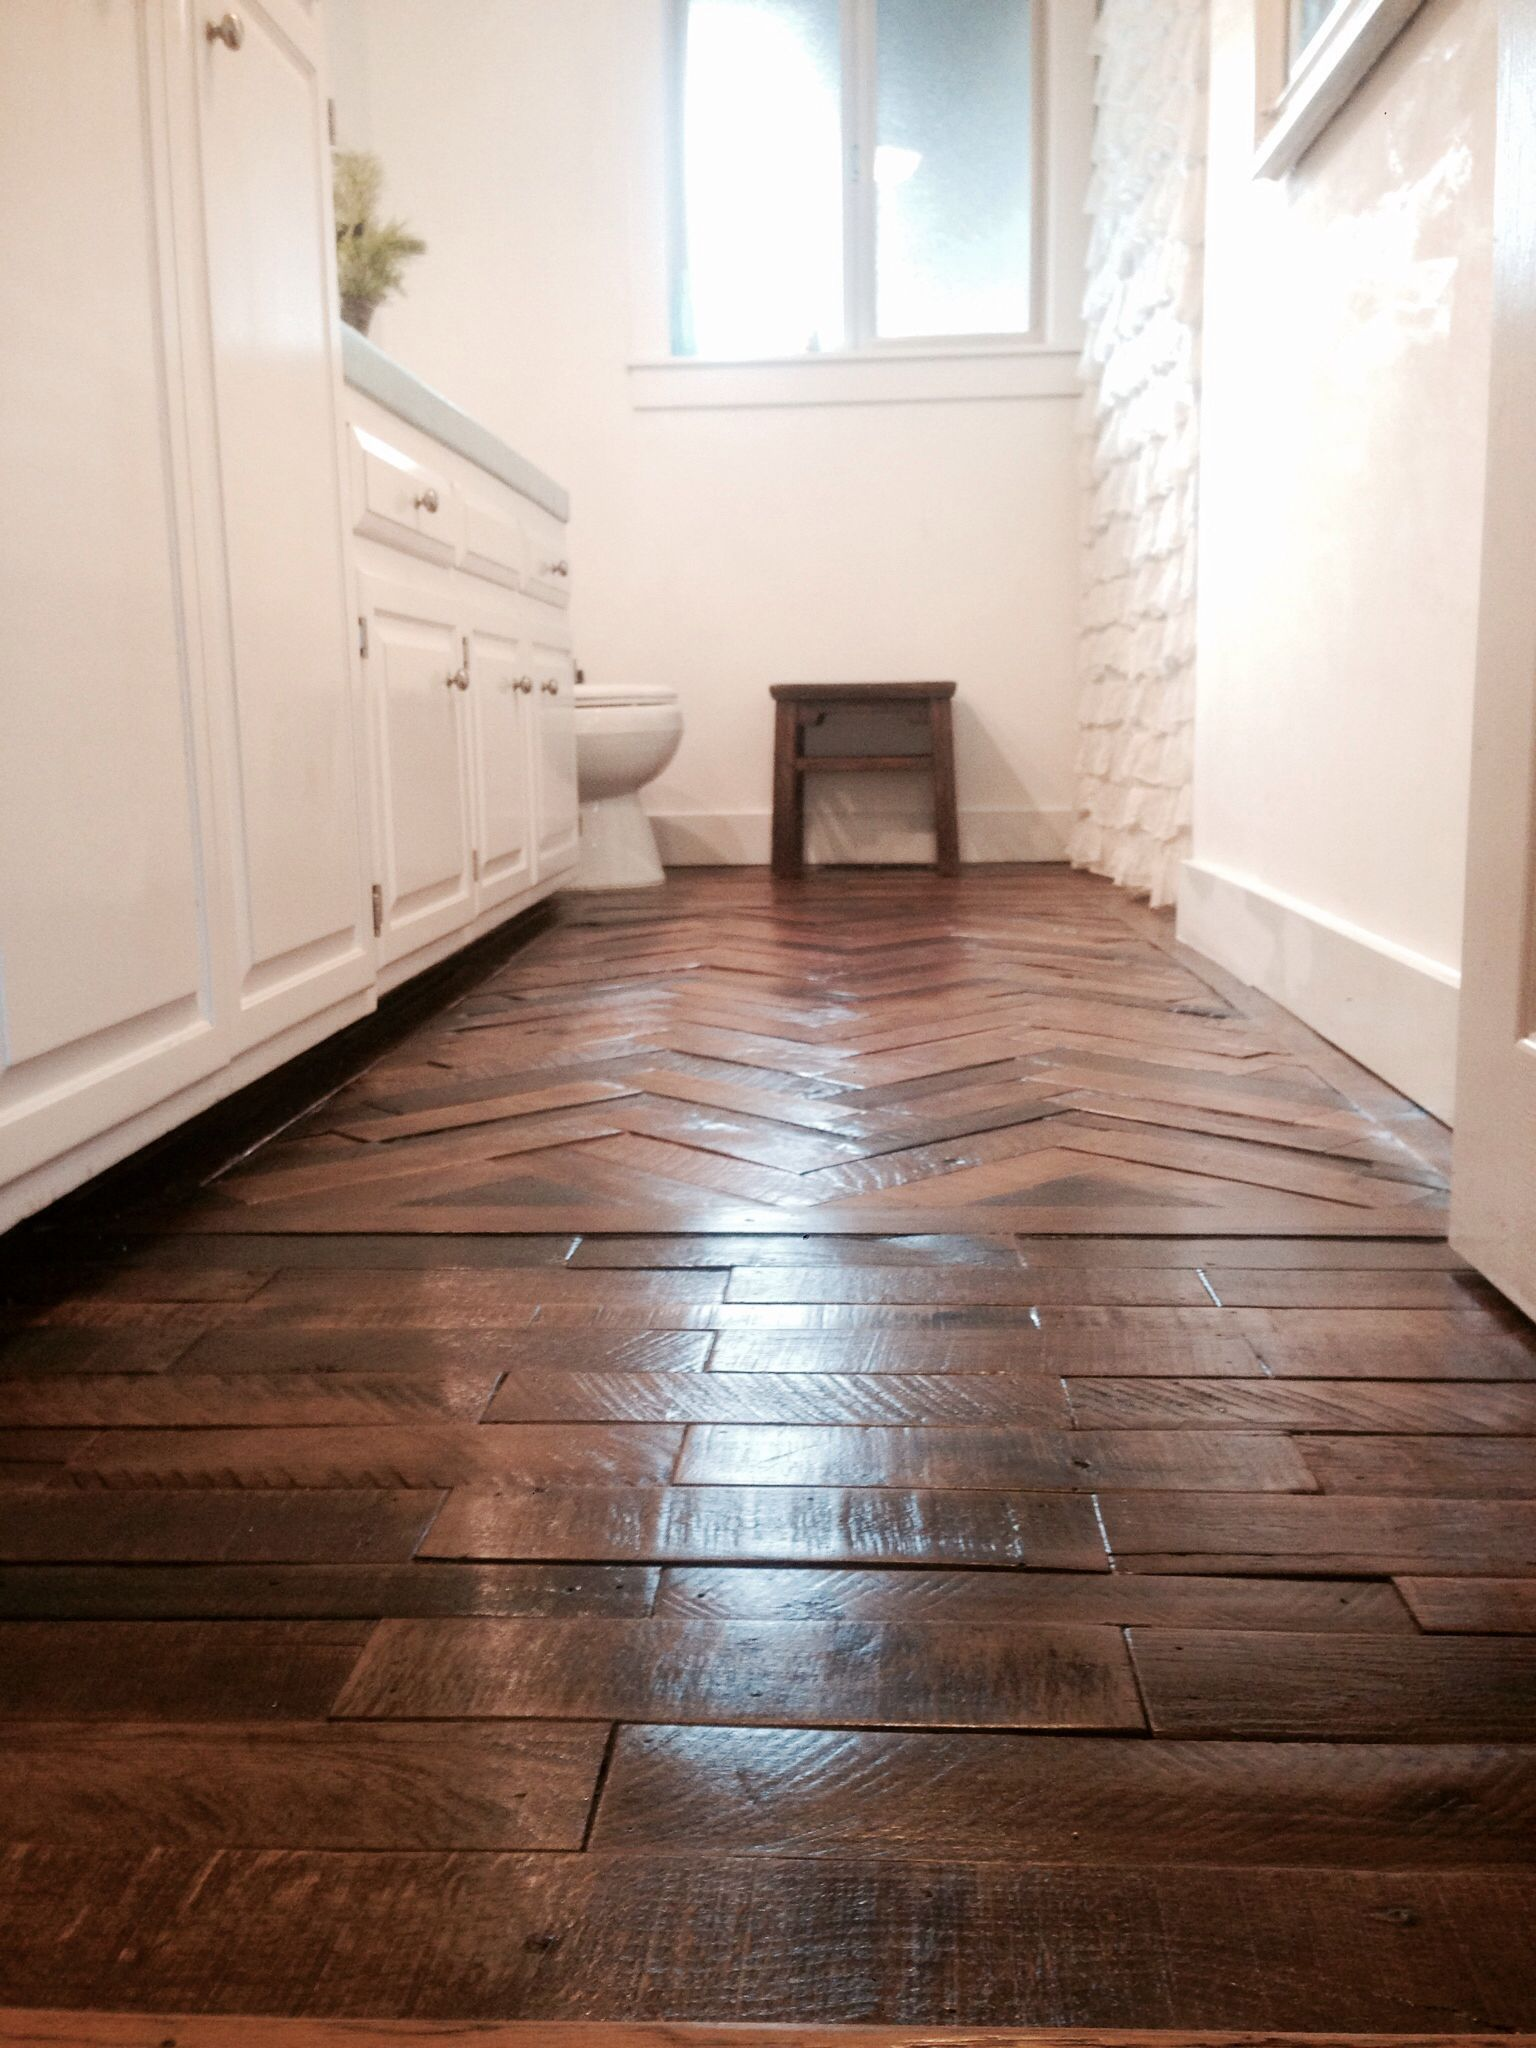 Wood floor made from reclaimed shipping pallets